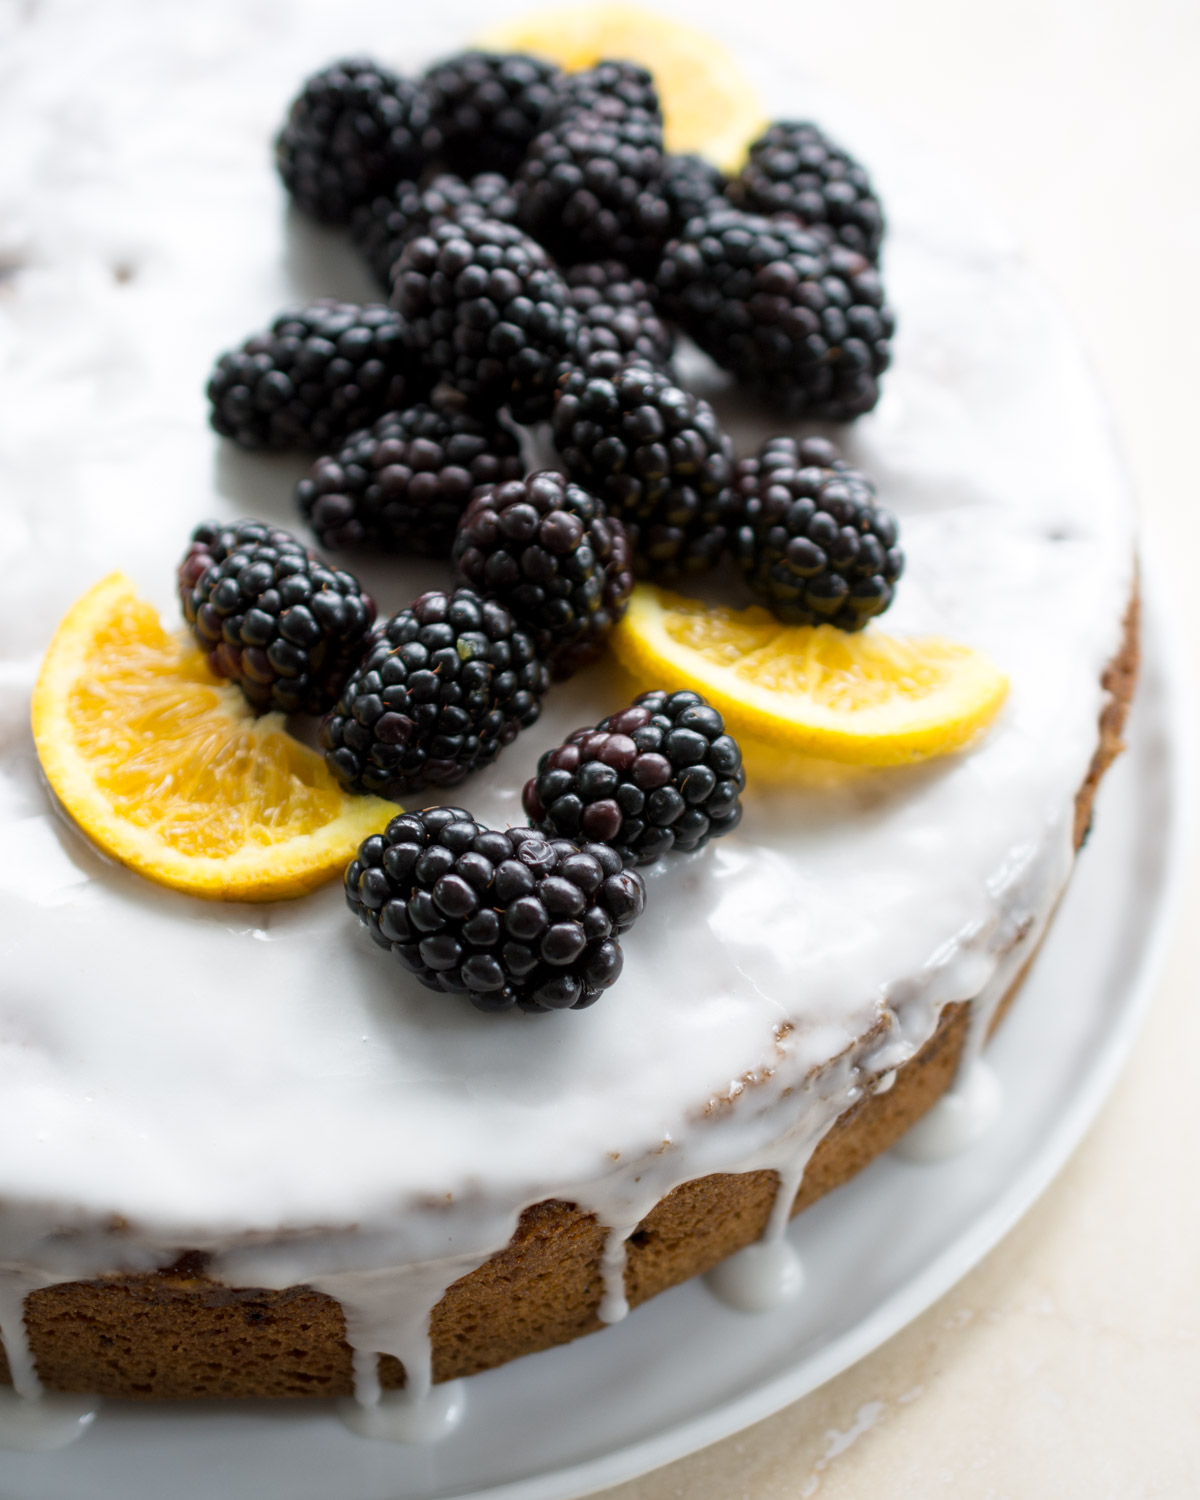 Just glazed orange blackberry cake. Garnished with fresh blackberries and orange slices.